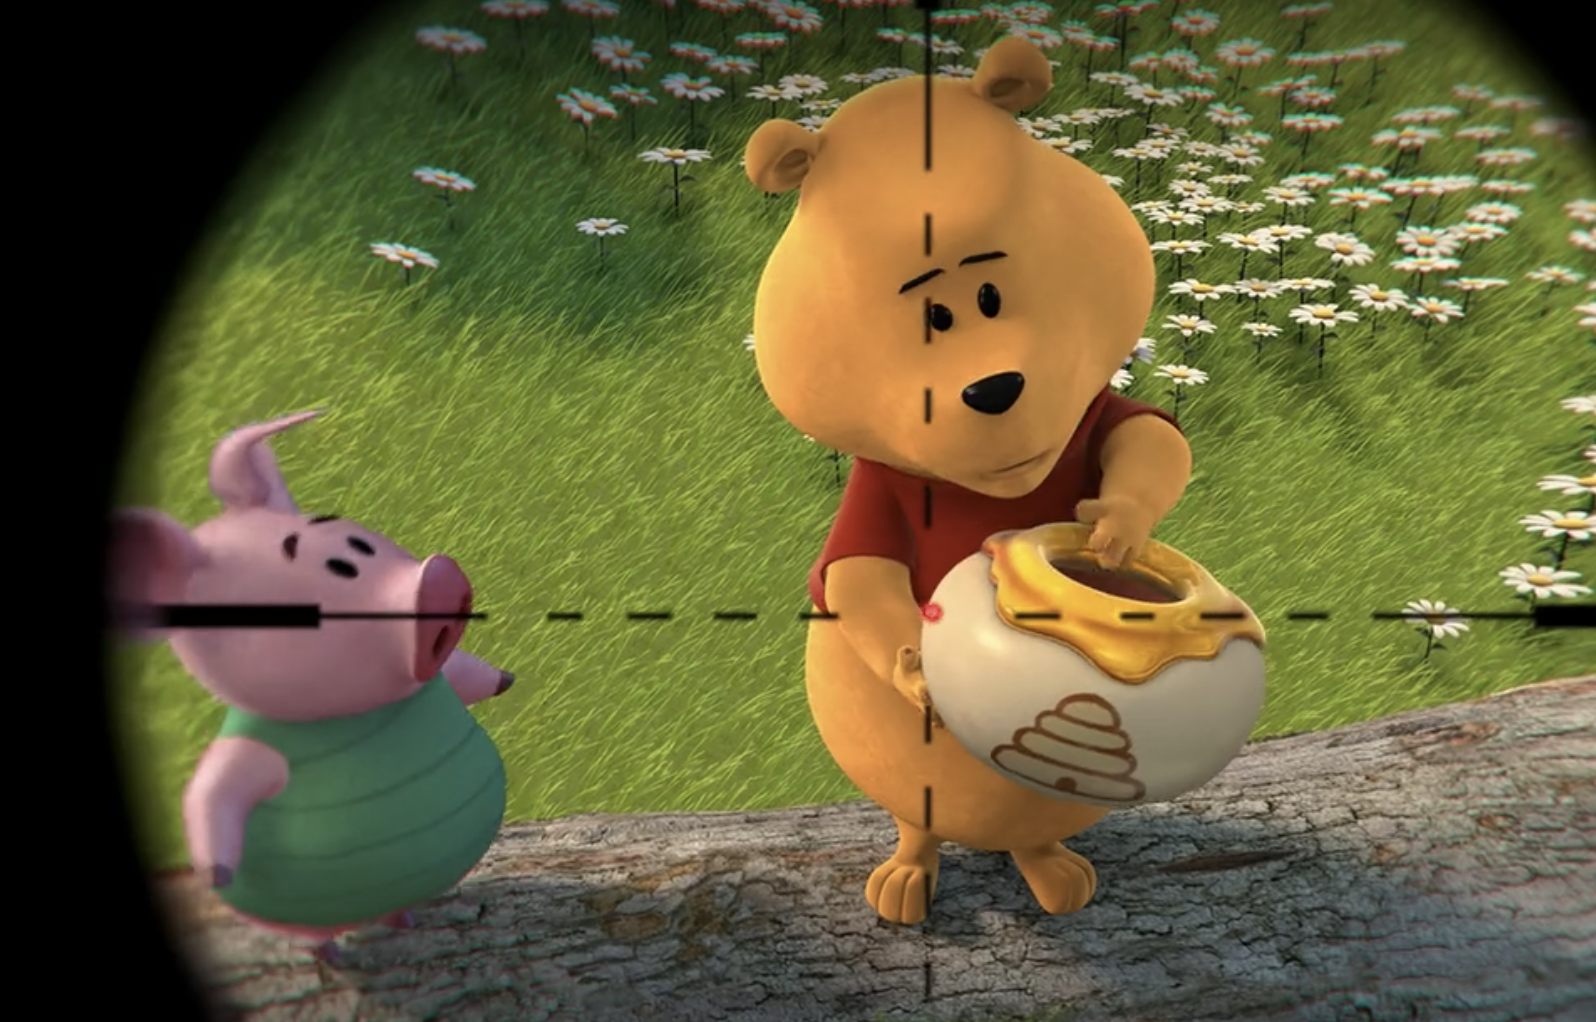 Piglet standing next to Pooh, who's holding honey